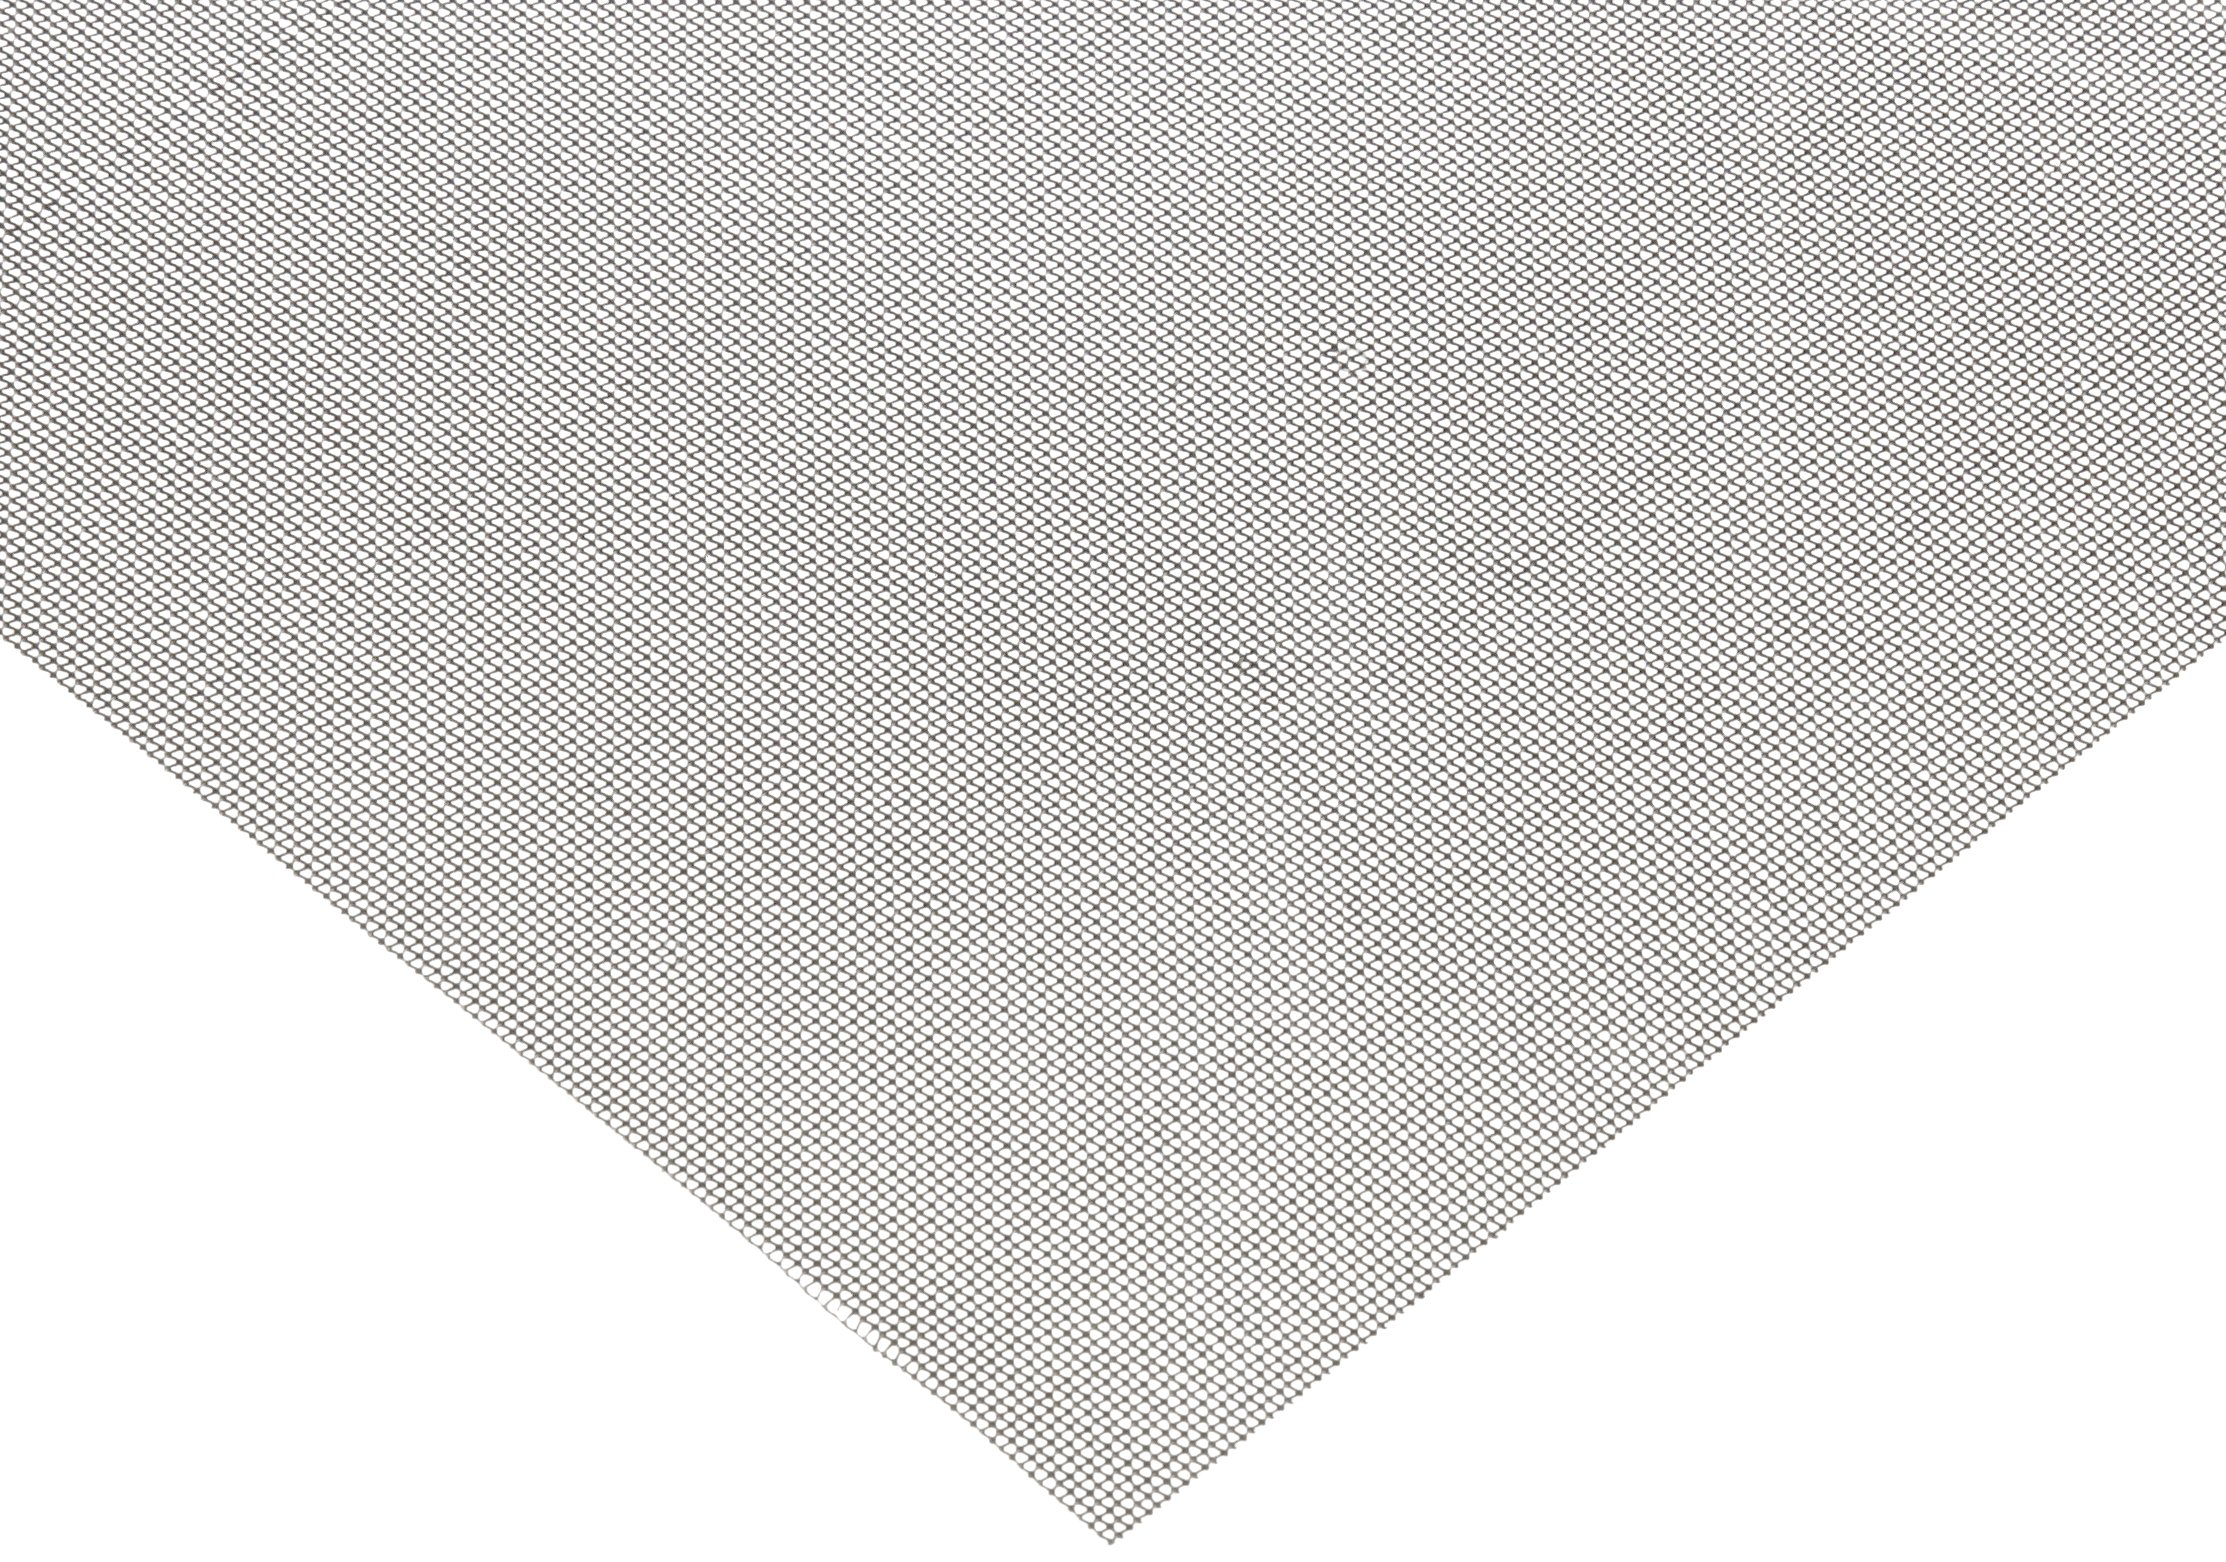 304 Stainless Steel Woven Mesh Sheet, Unpolished